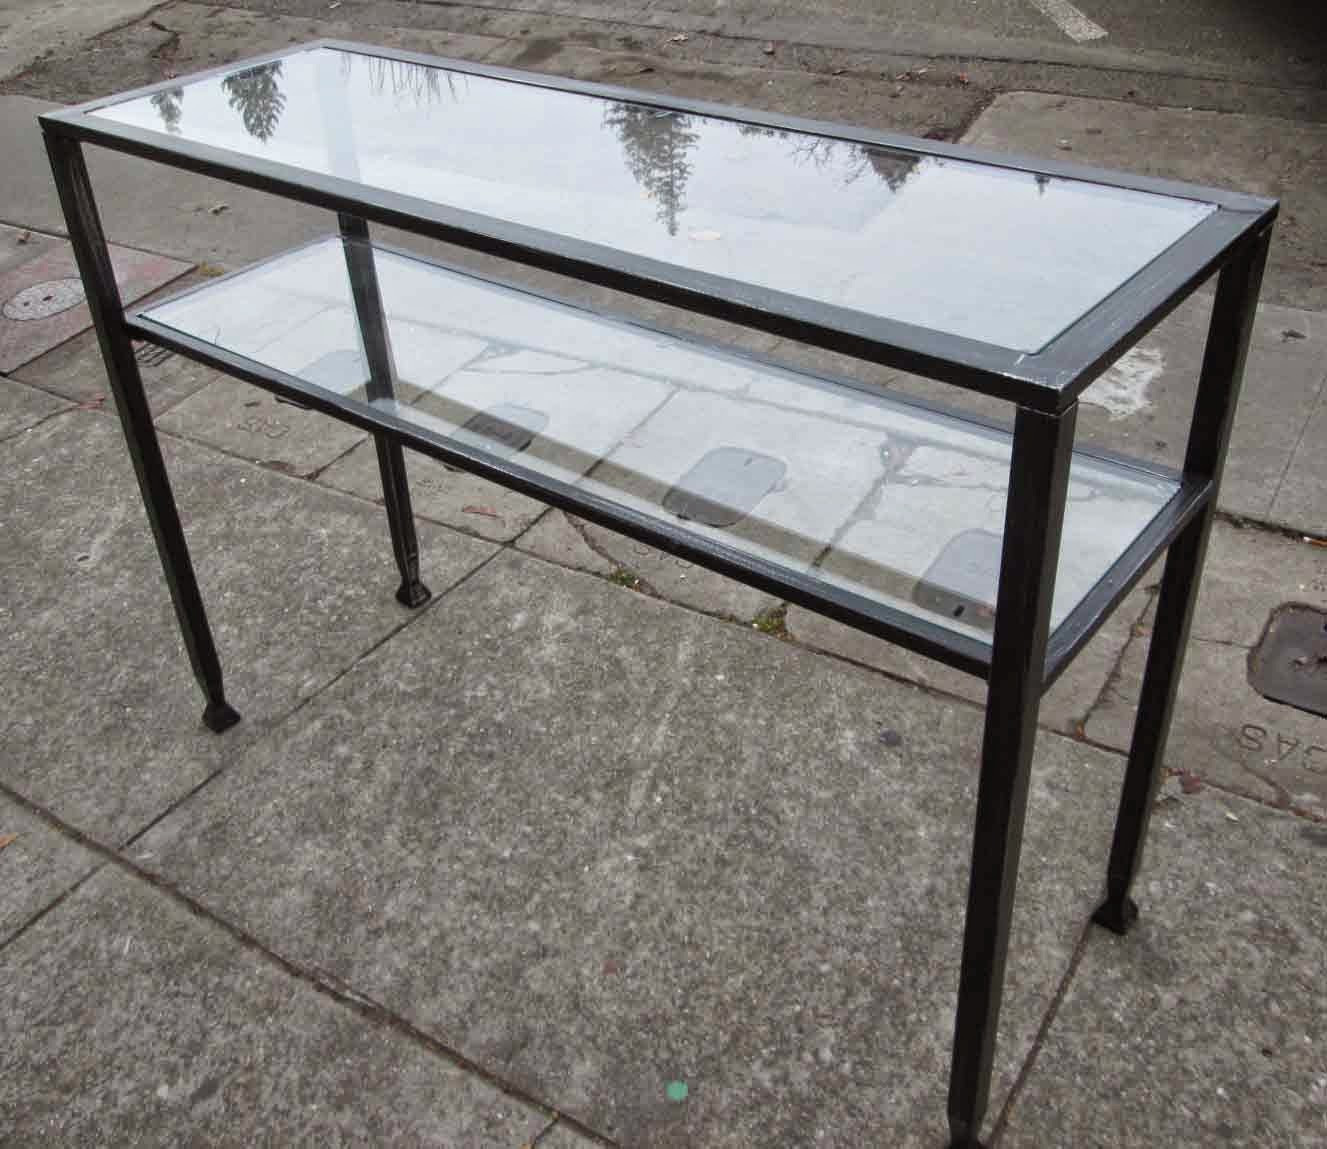 Best ideas about Metal Entryway Table . Save or Pin UHURU FURNITURE & COLLECTIBLES SOLD Glass and Metal Now.